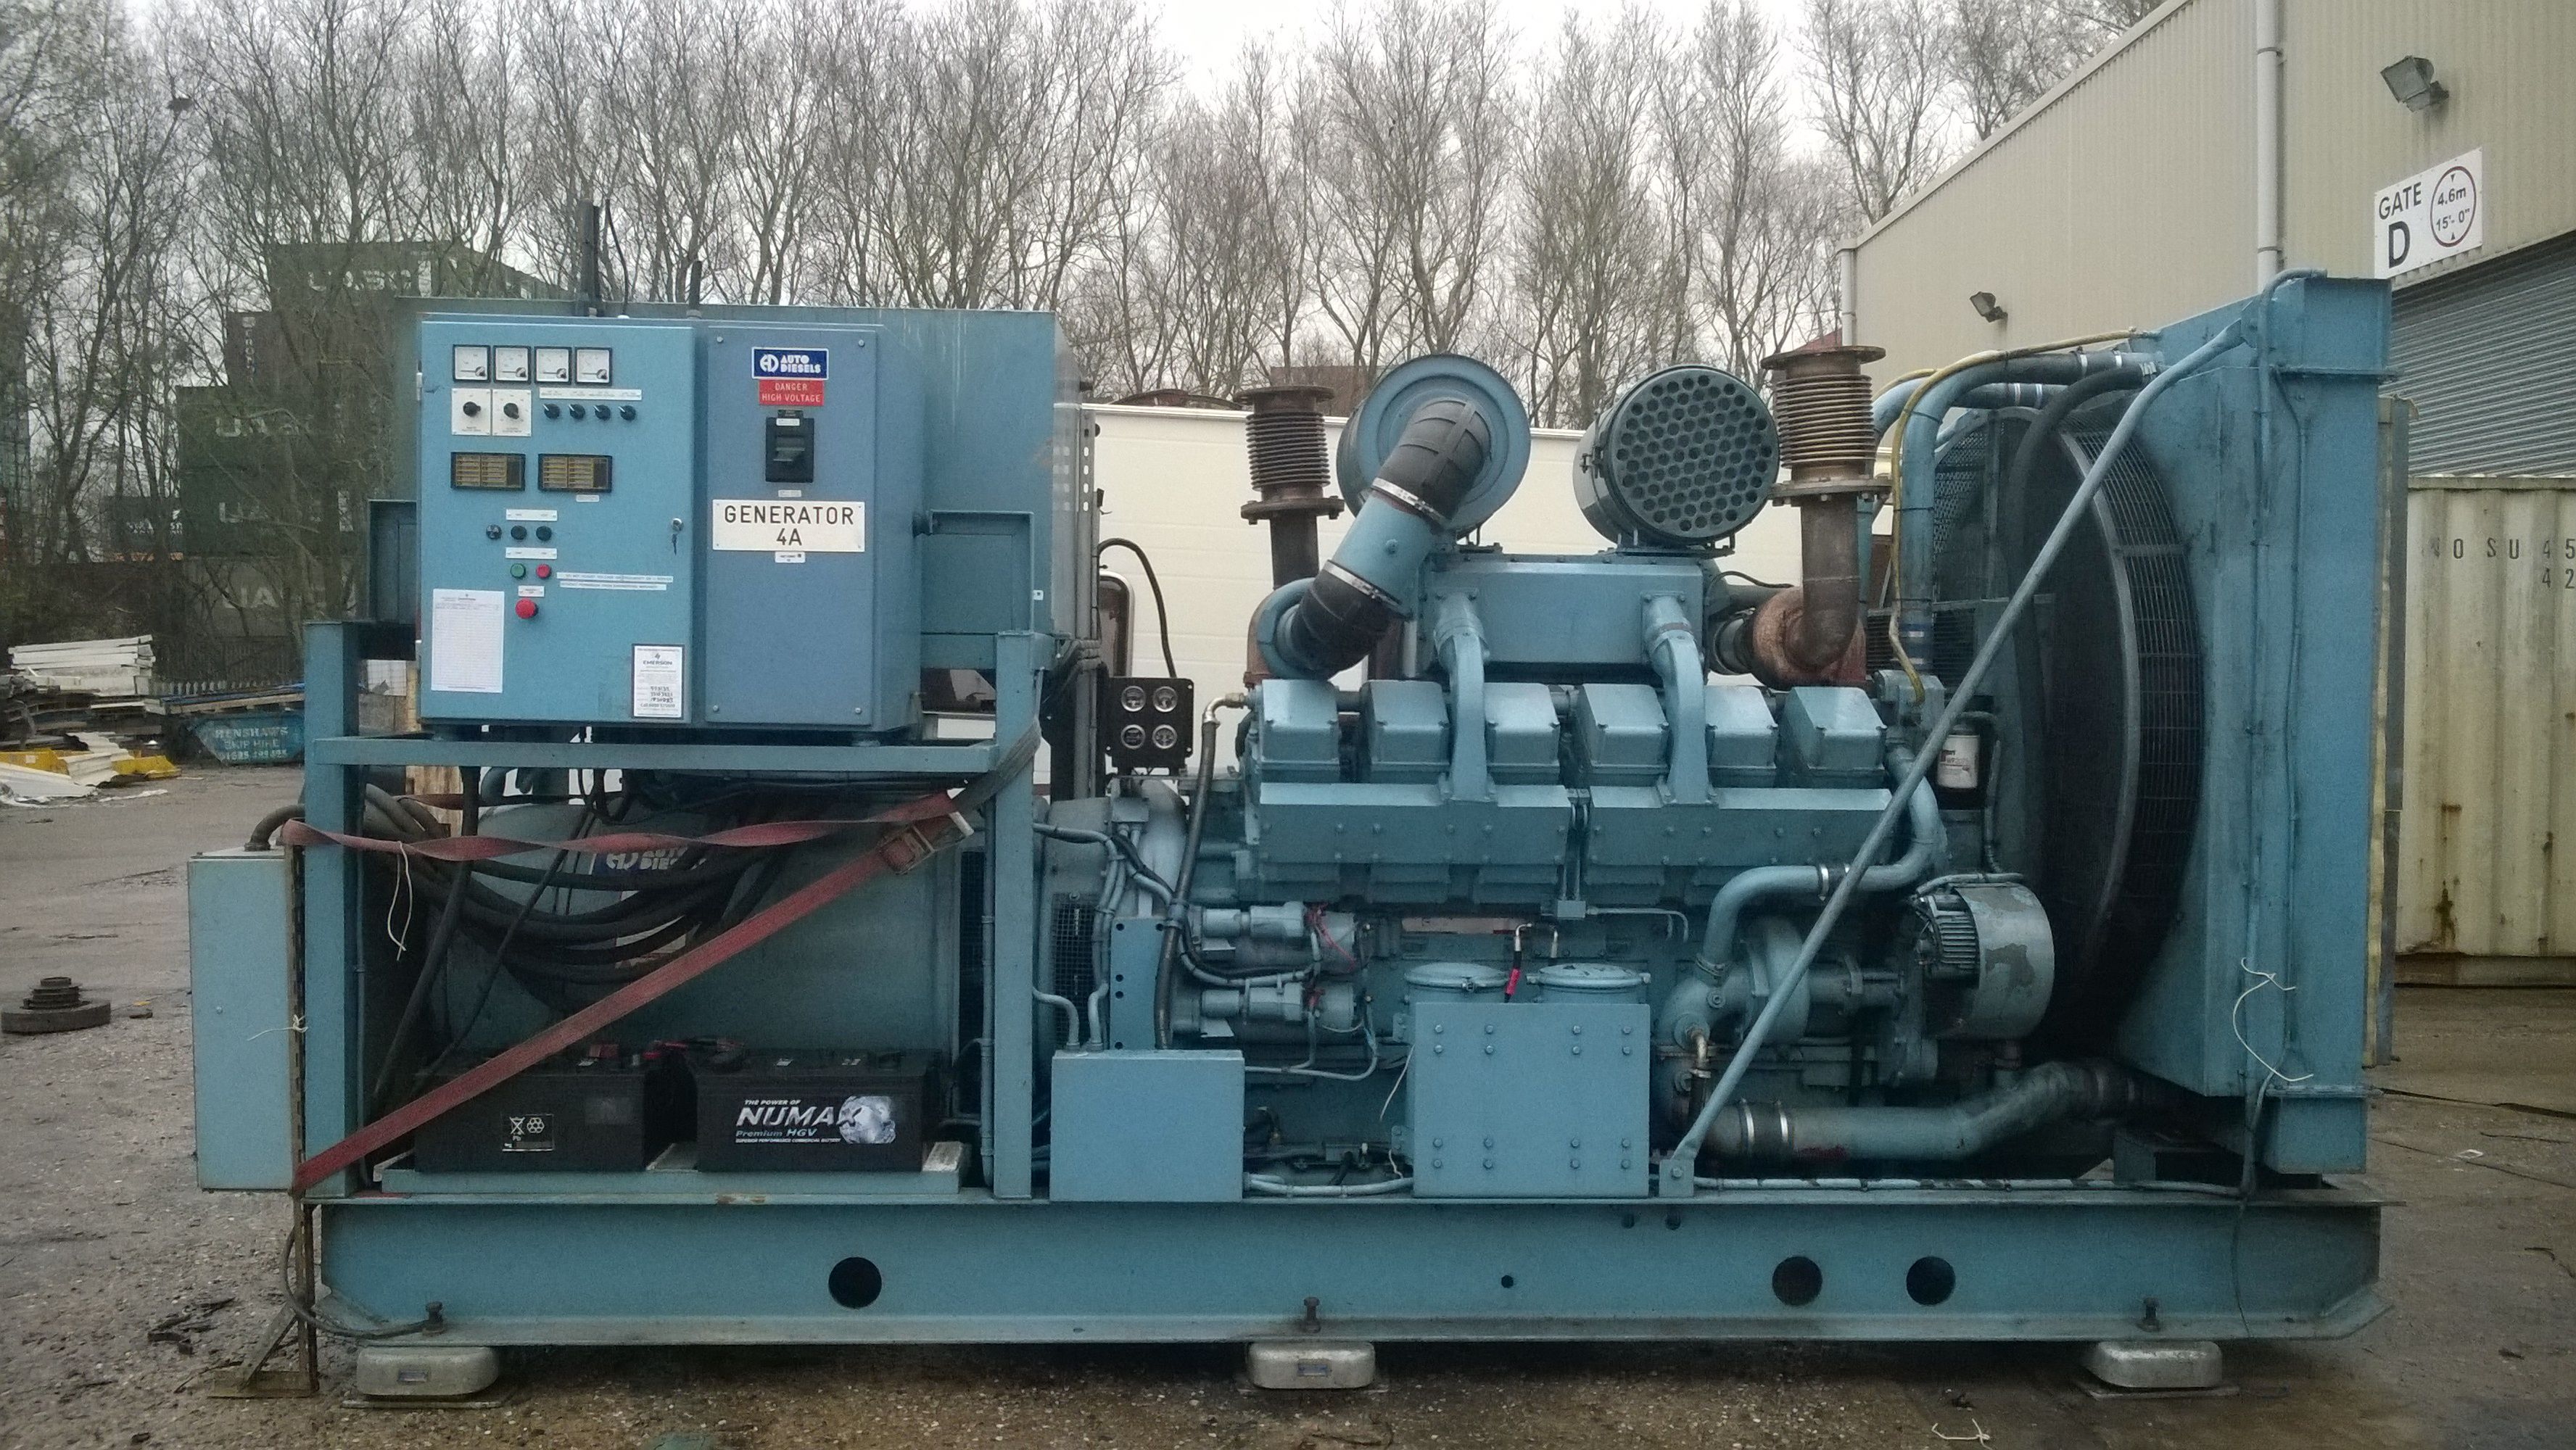 The Perkins generators for sale which can be procured by people